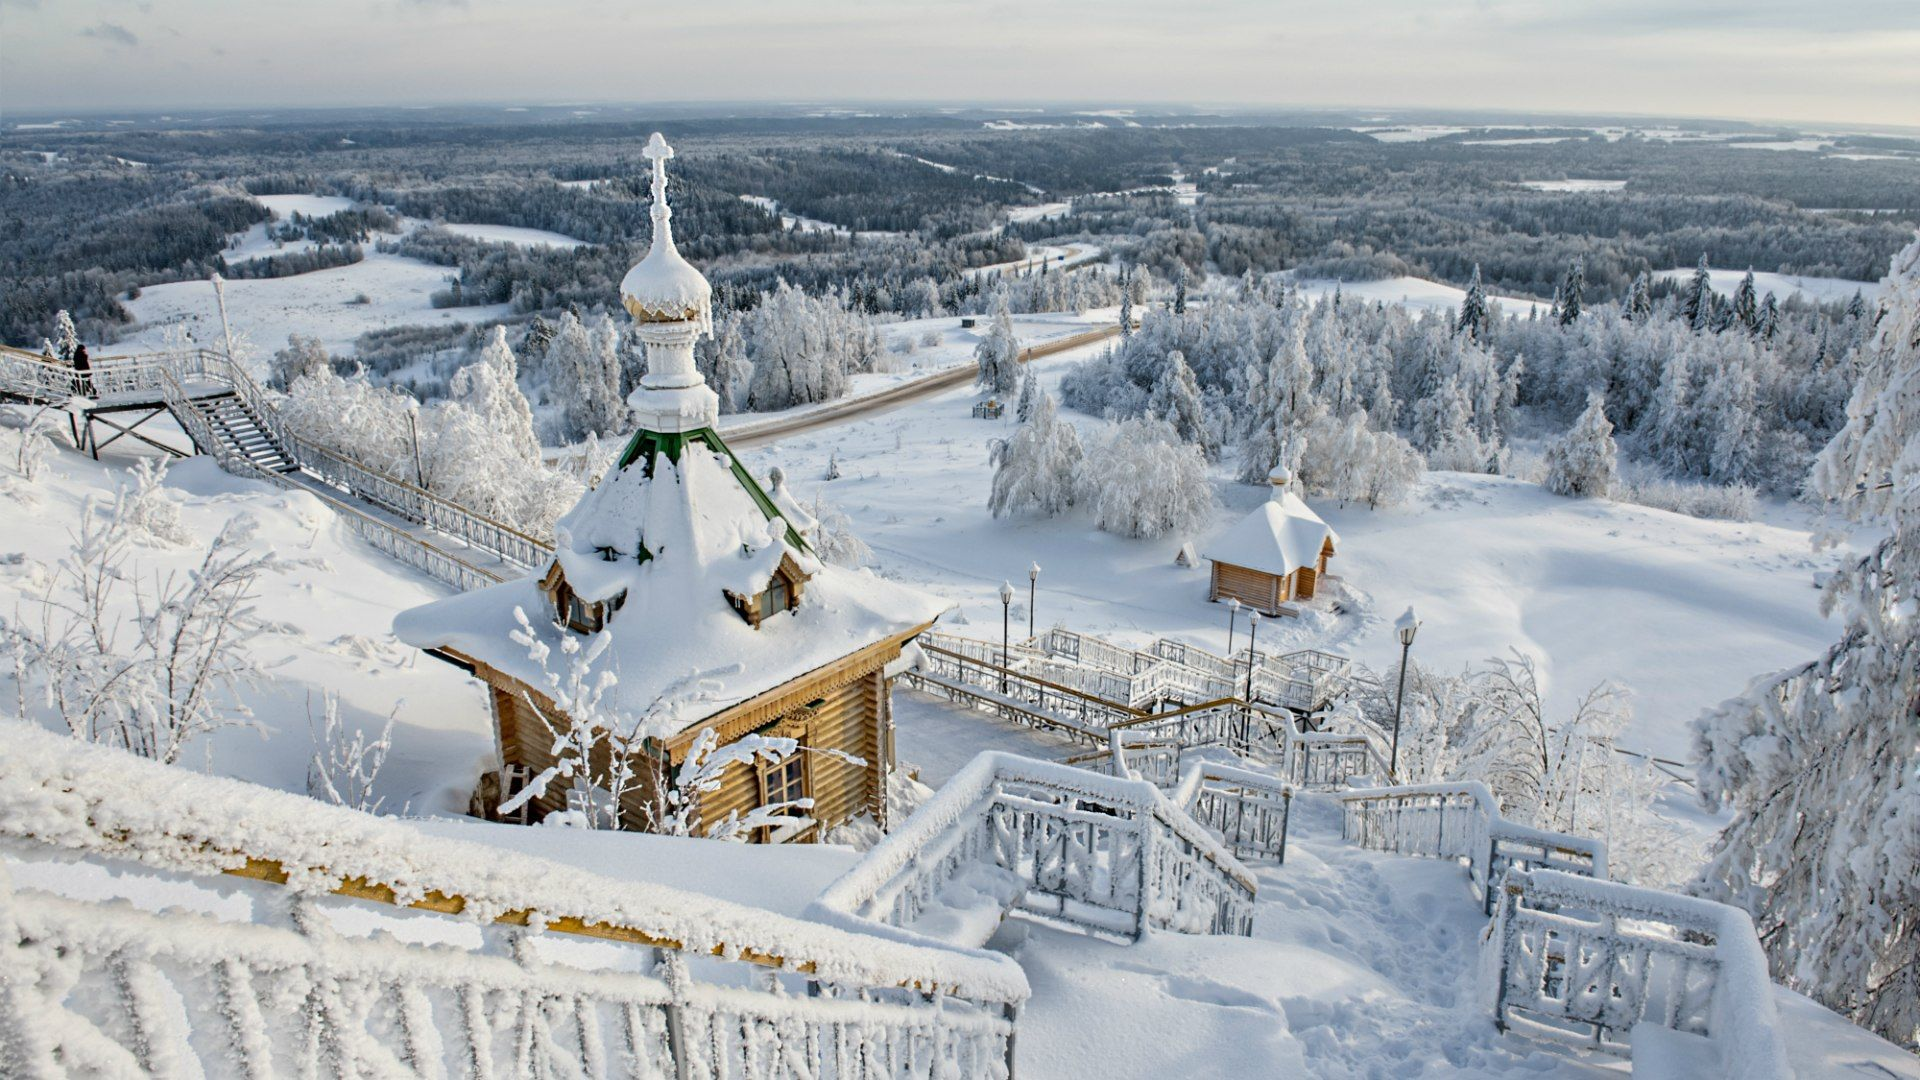 1920x1080 Winter landscape in Russia wallpapers and images - wallpapers ...